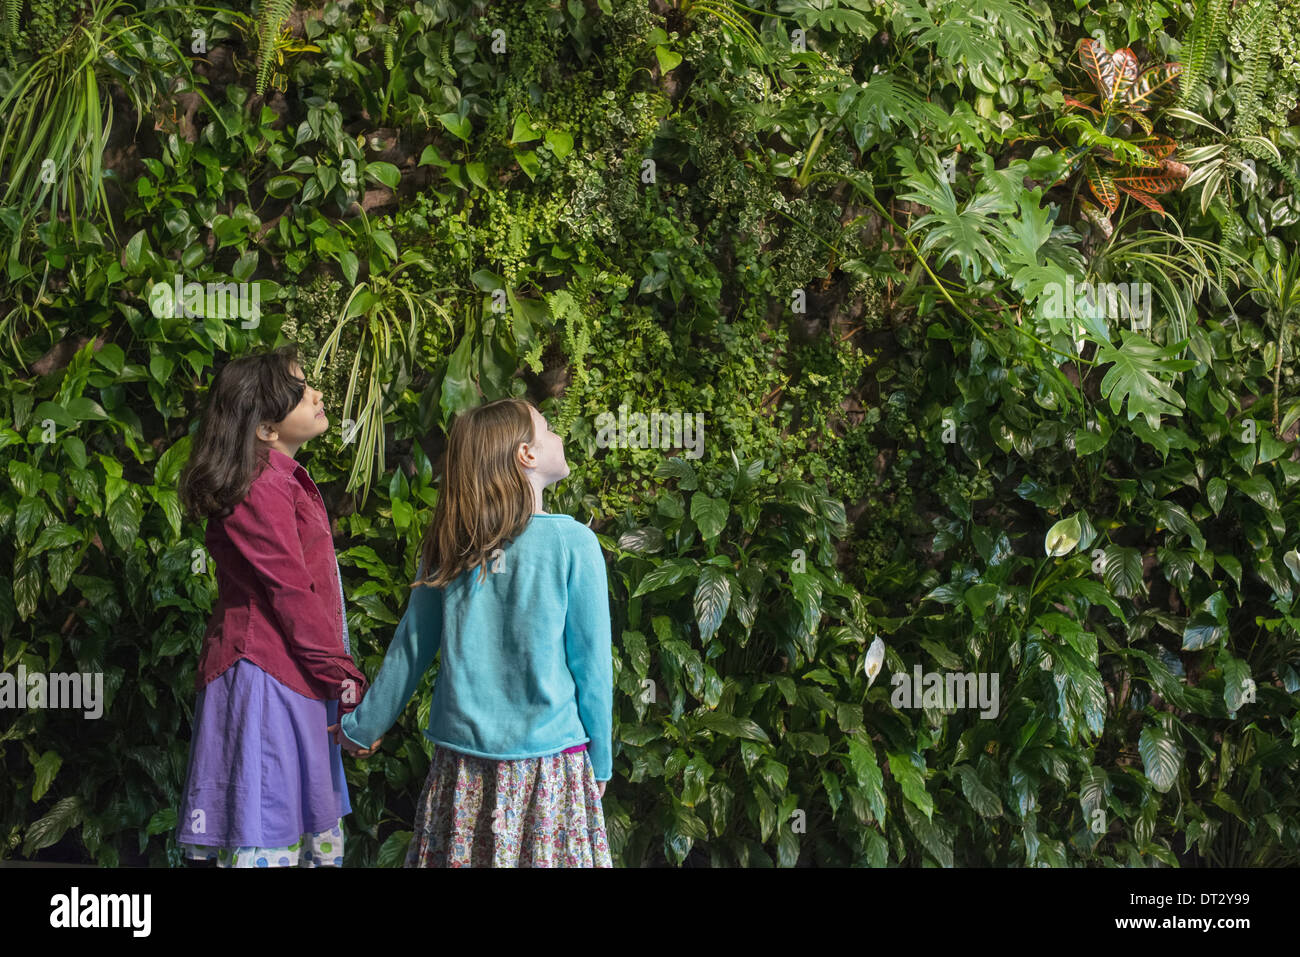 urban lifestyle Two children holding hands and looking up at a wall covered with growing foliage of a large range of plants - Stock Image